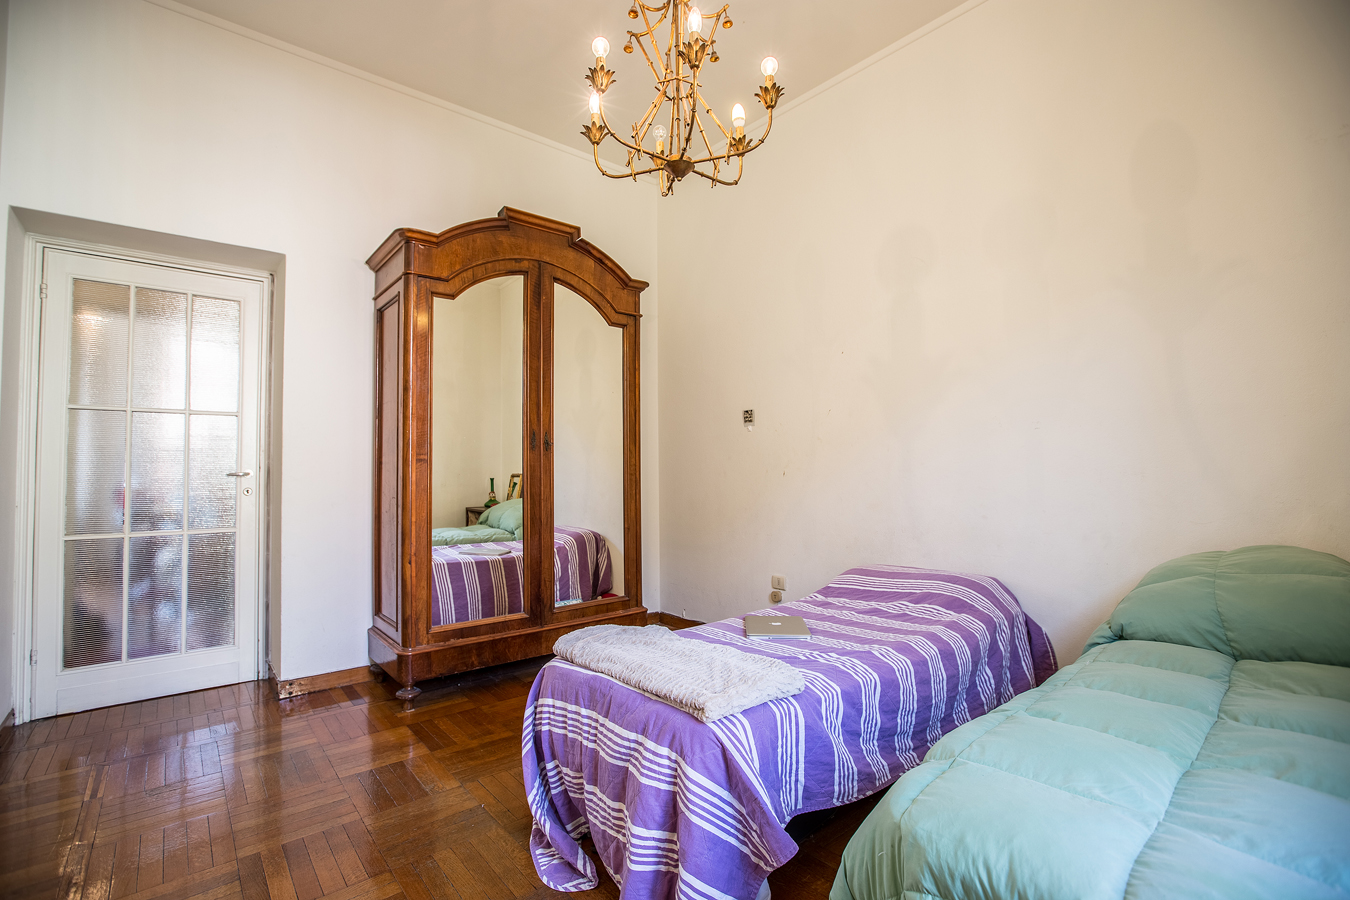 Student Accomodation for rent in double room in Via Franchino Gaffurio, 2, in Milano, Italy